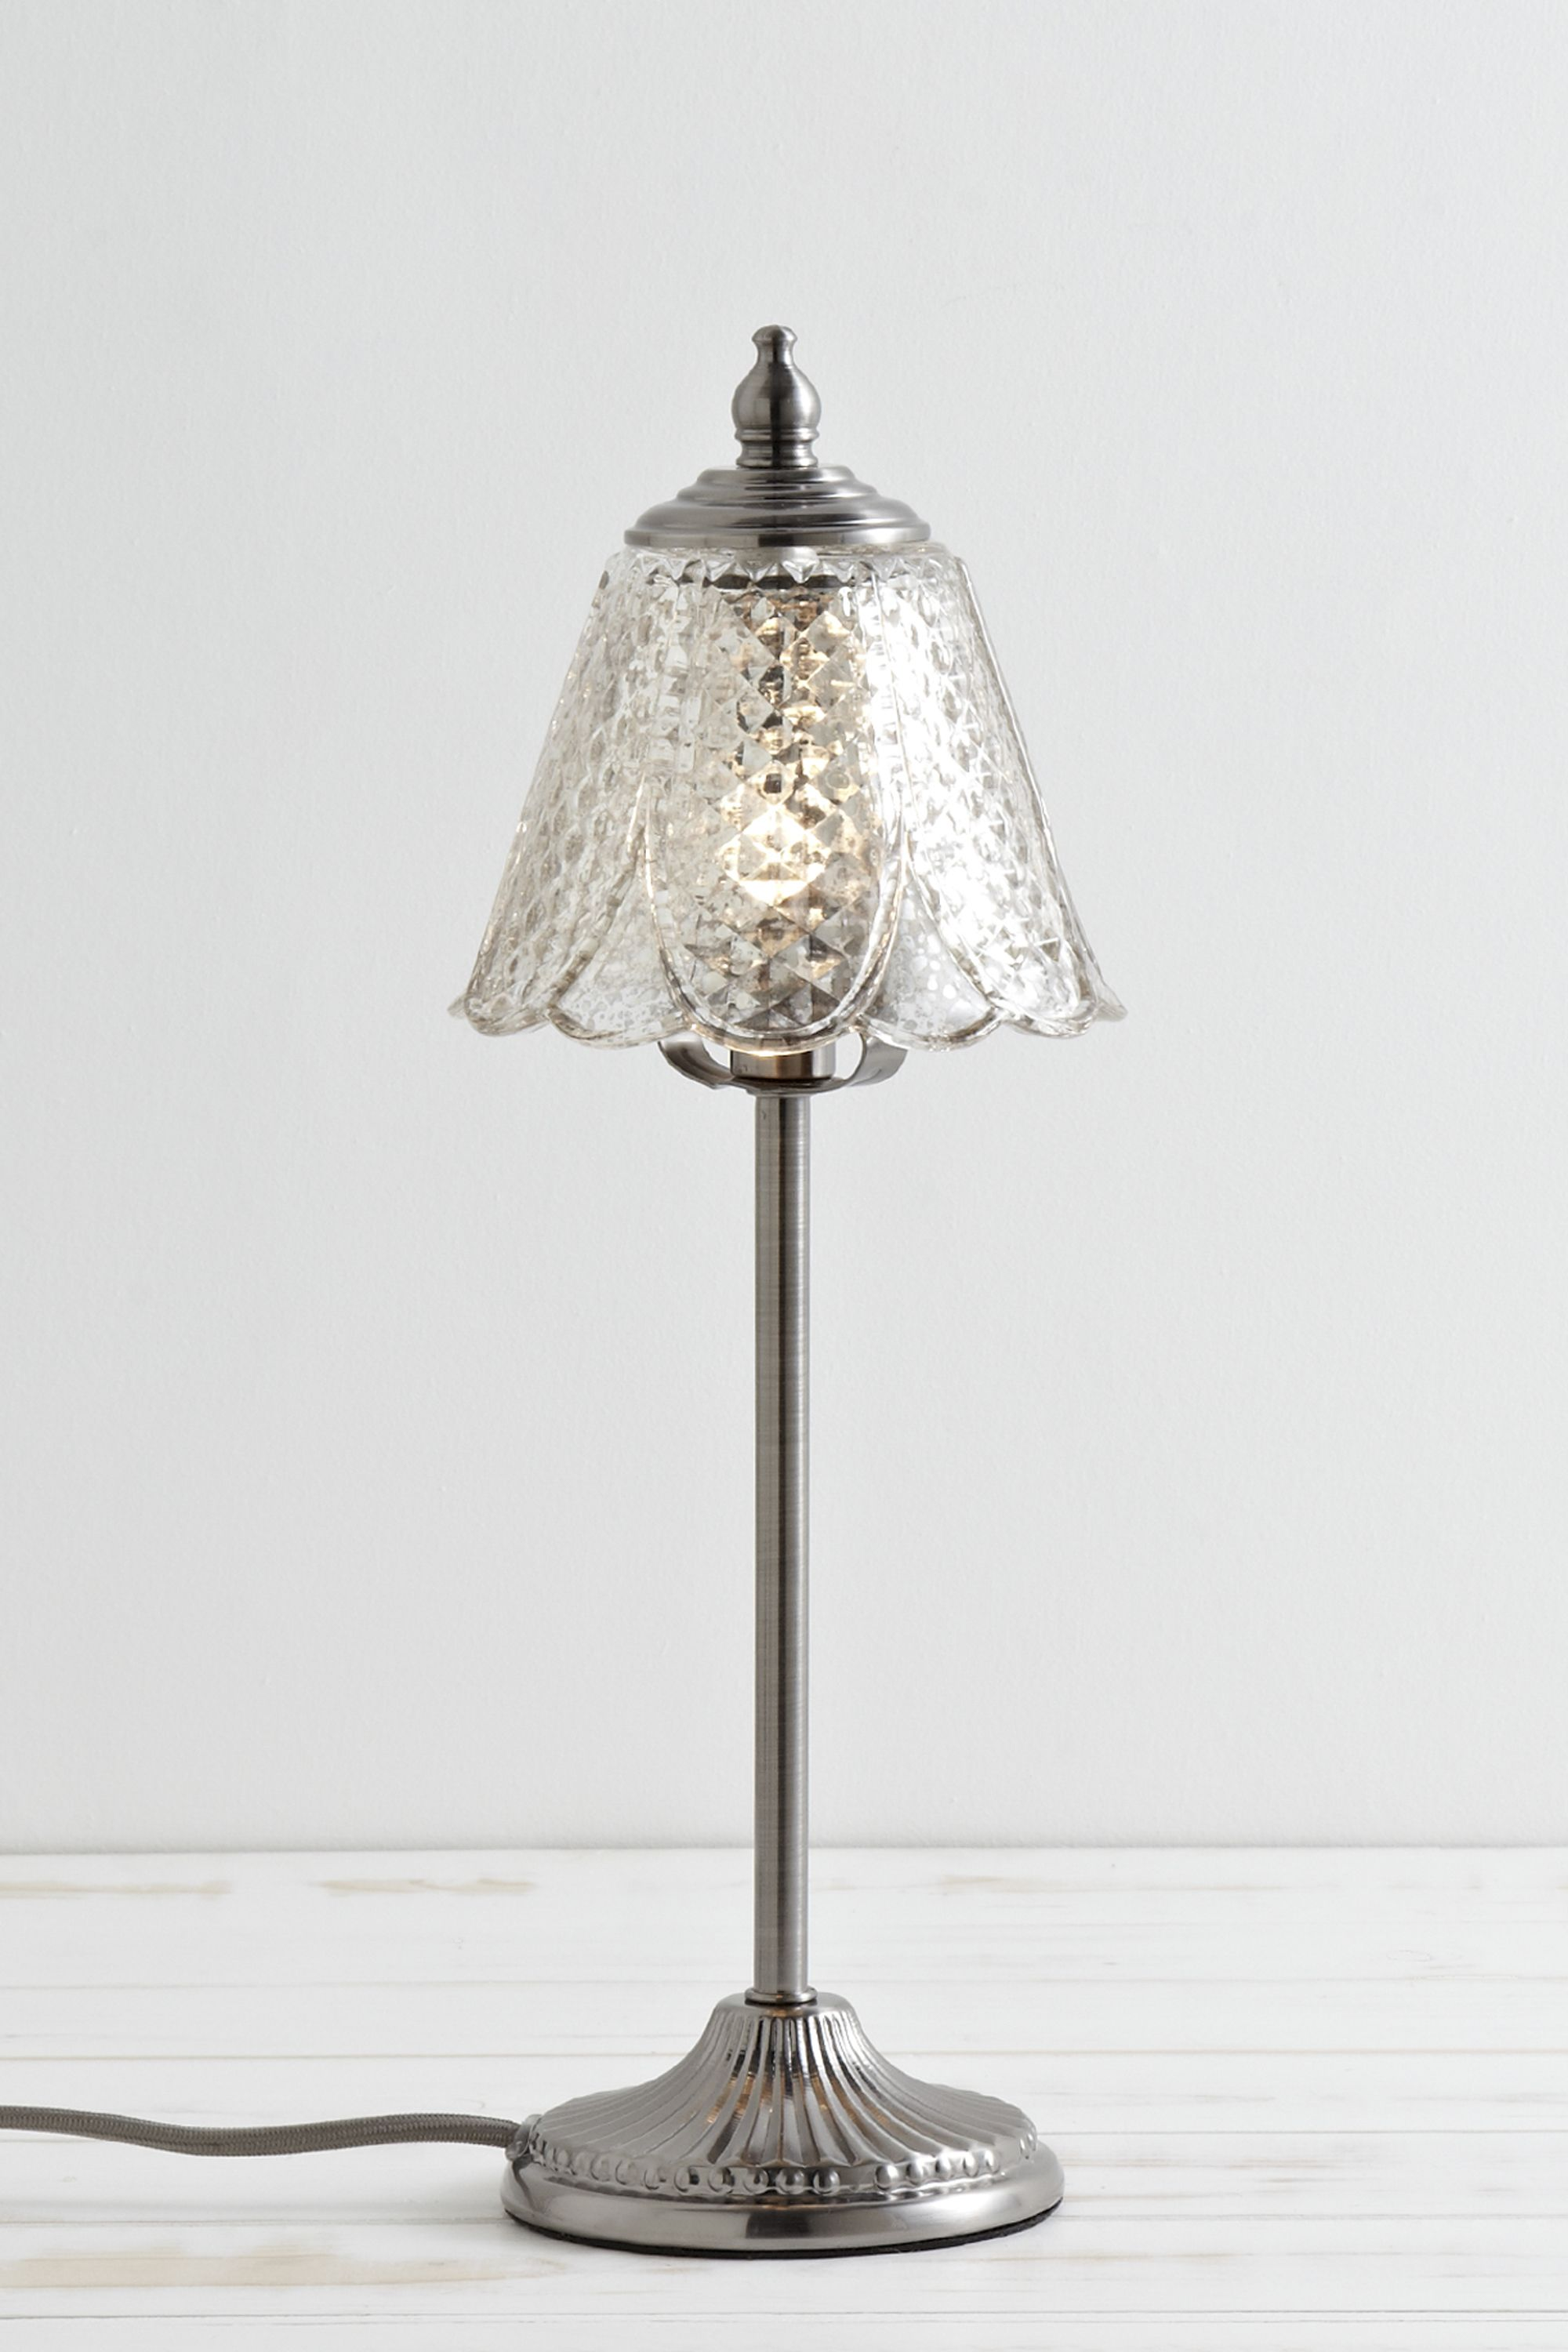 Matilda table lamp bhs furnishings pinterest bhs and lights matilda table lamp bhs mozeypictures Image collections